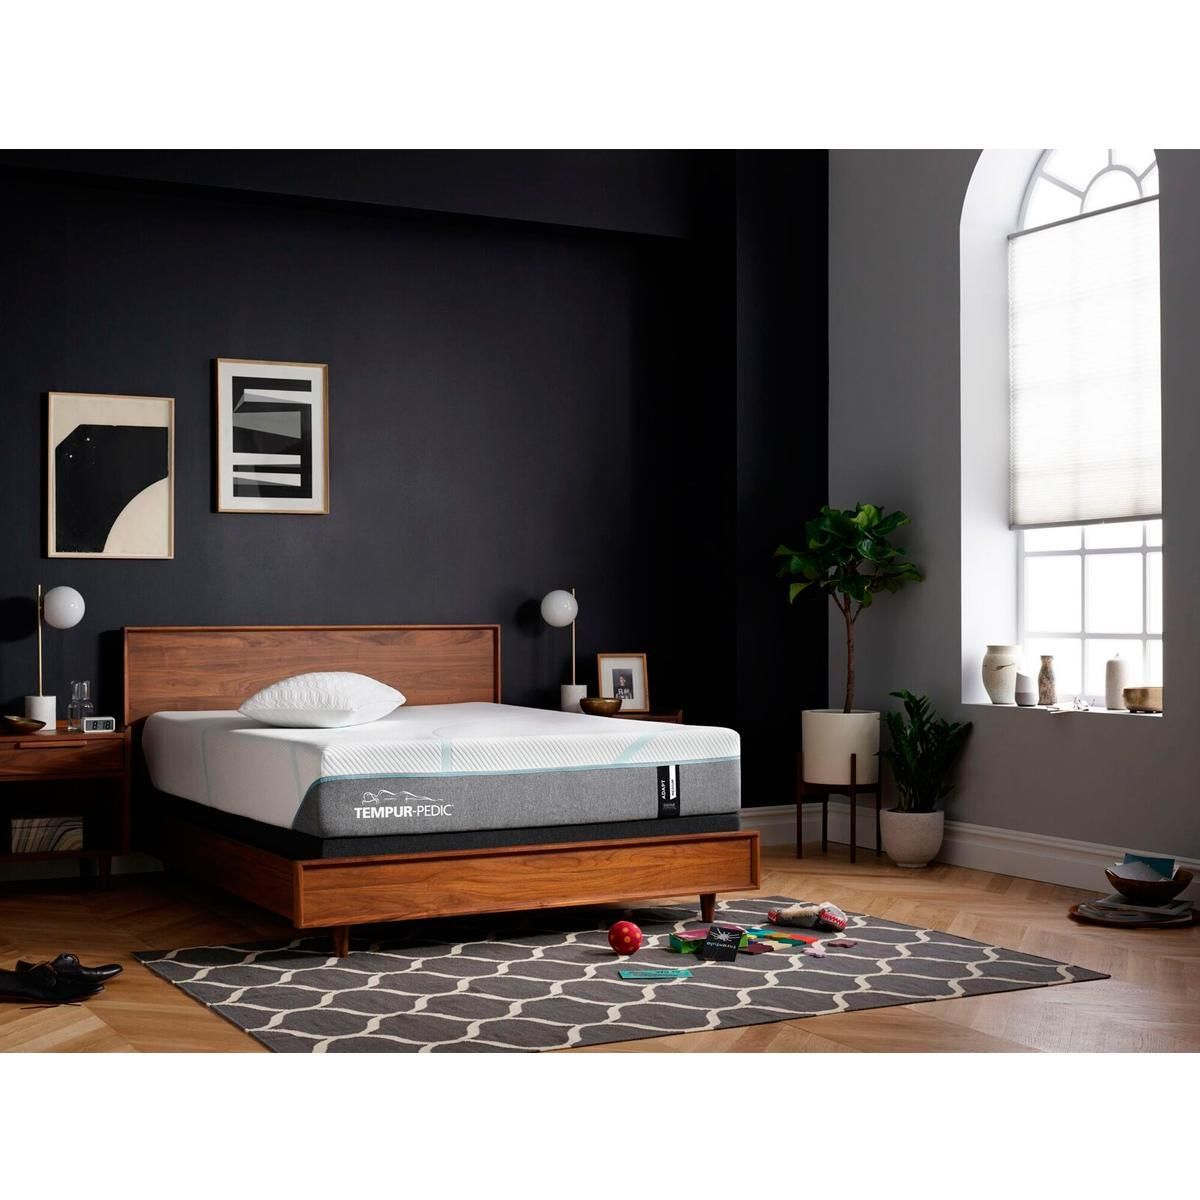 Tempurpedic Tempur Adapt Medium King Mattress Only